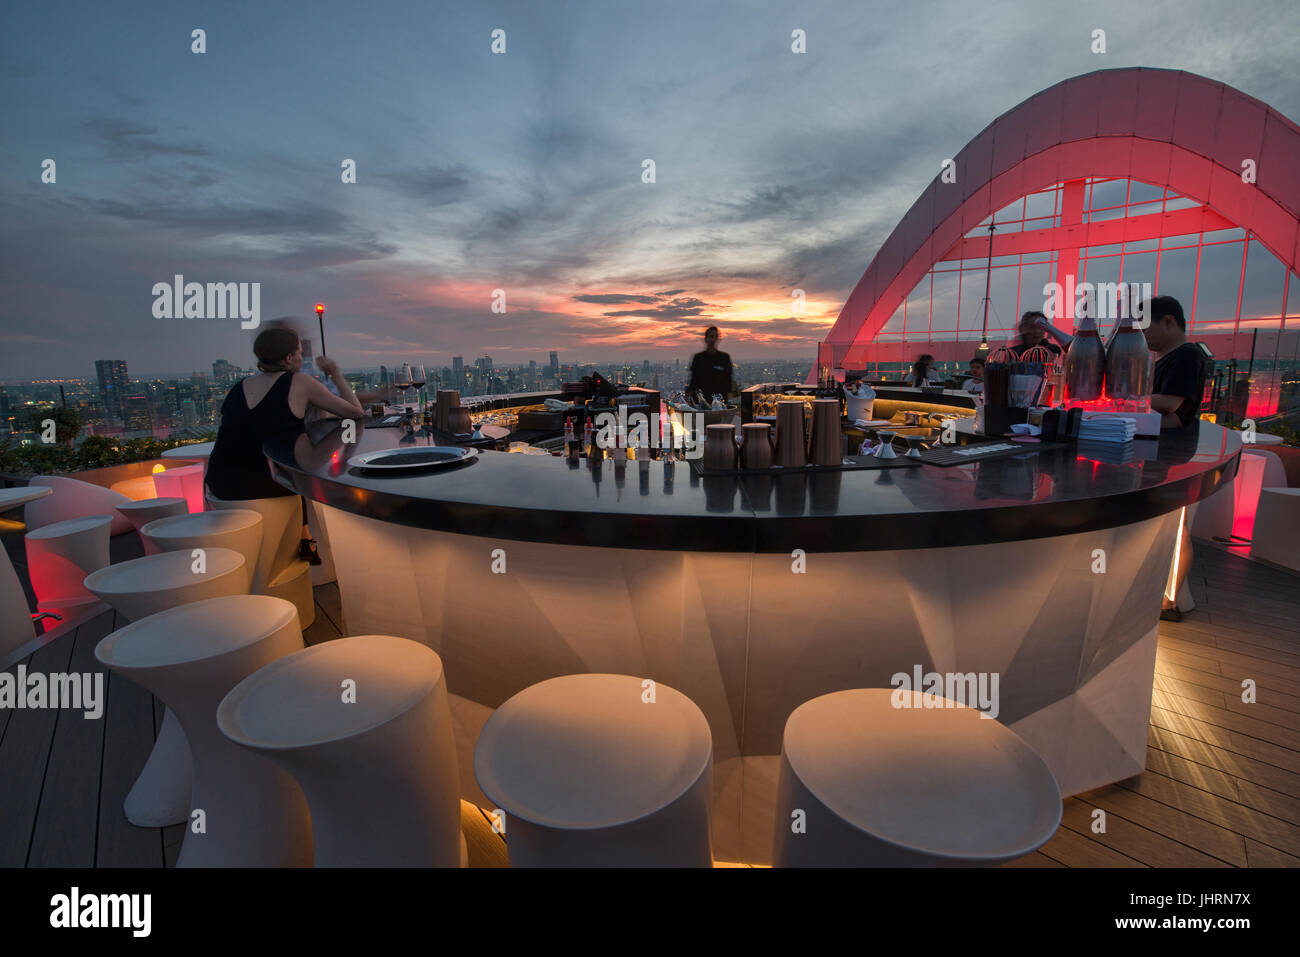 Enjoying sunset at a rooftop bar, Bangkok, Thailand - Stock Image